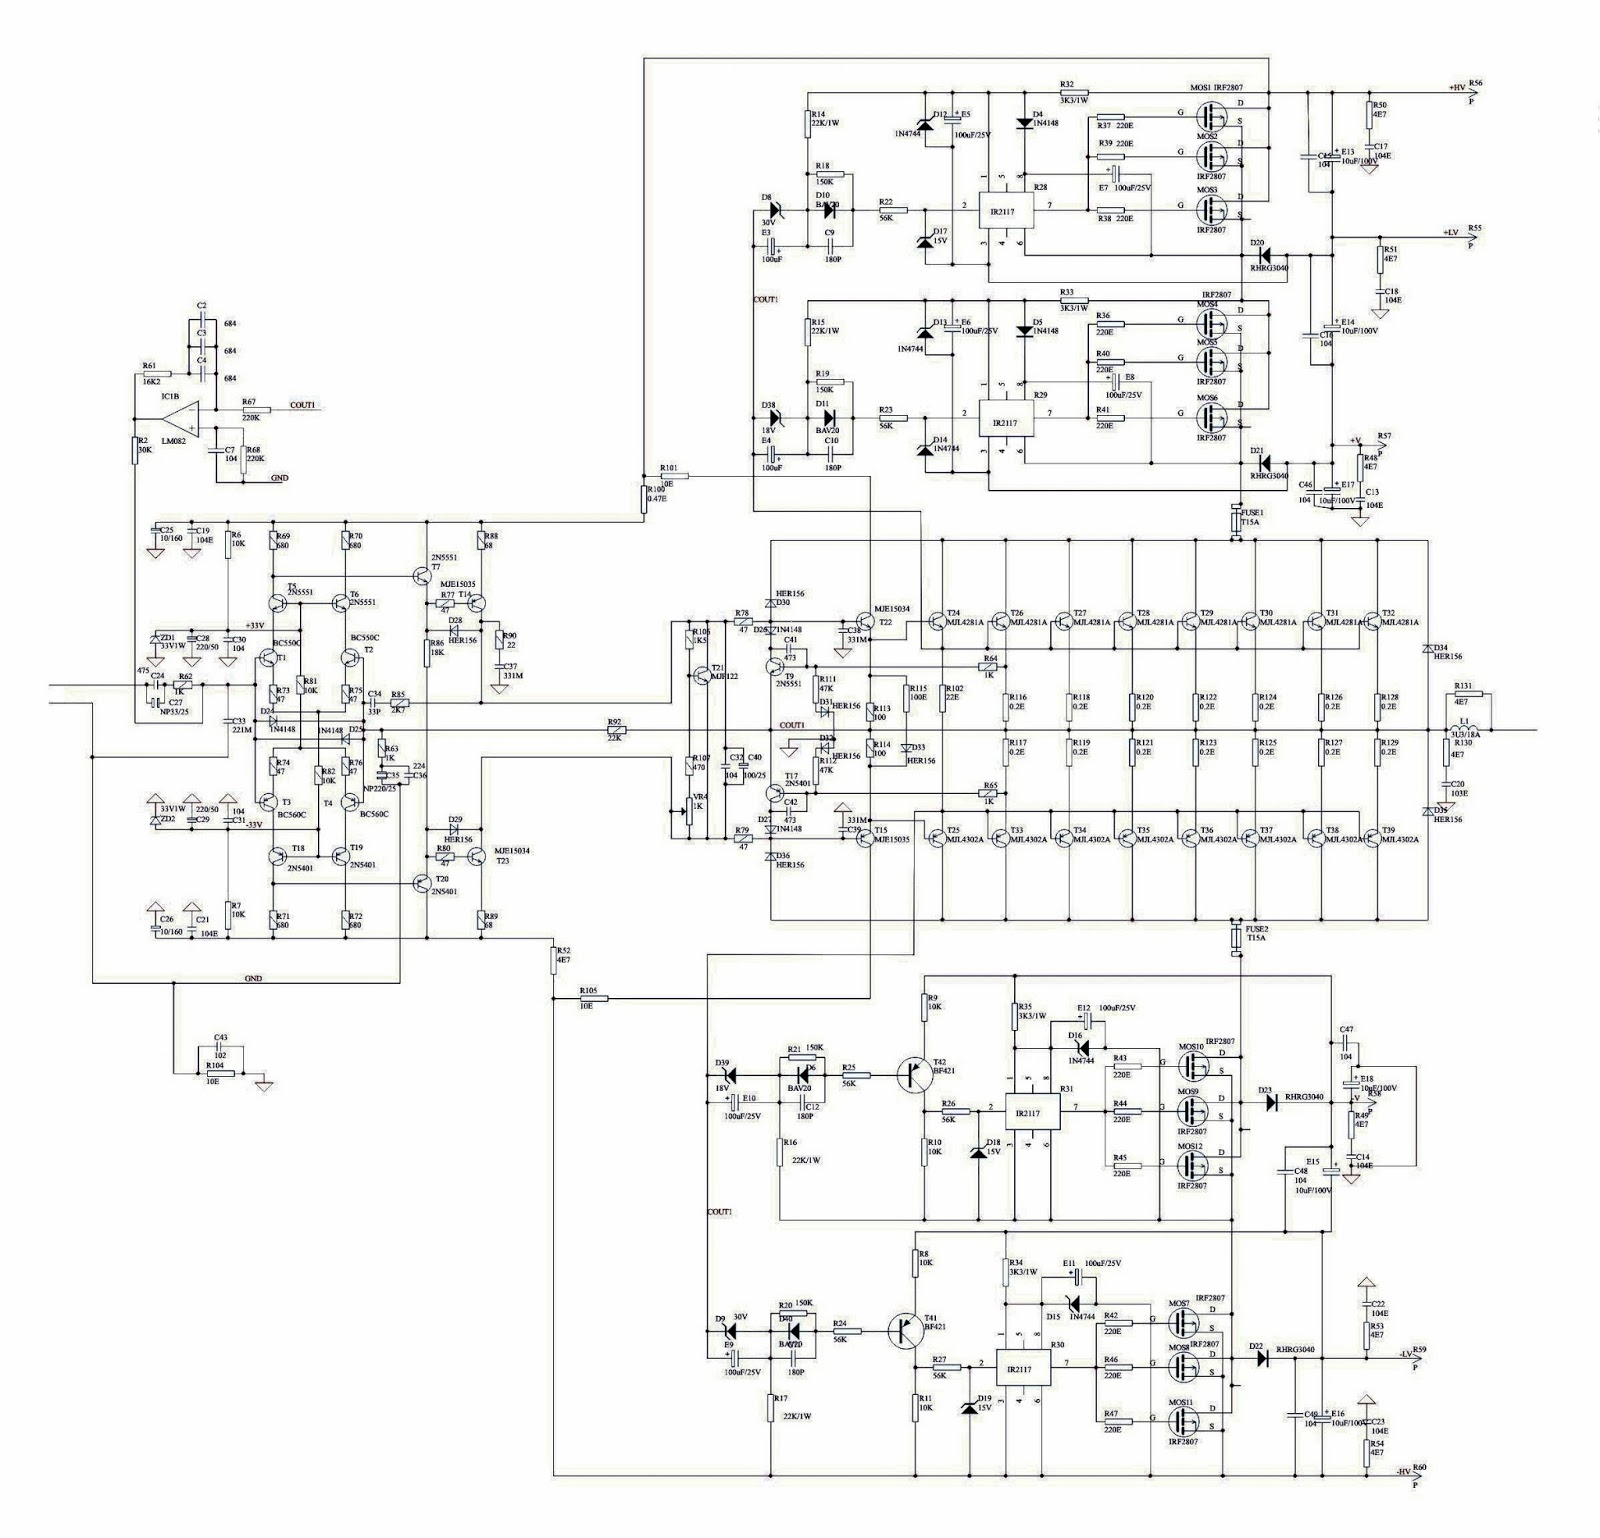 schematic power amplifier apex